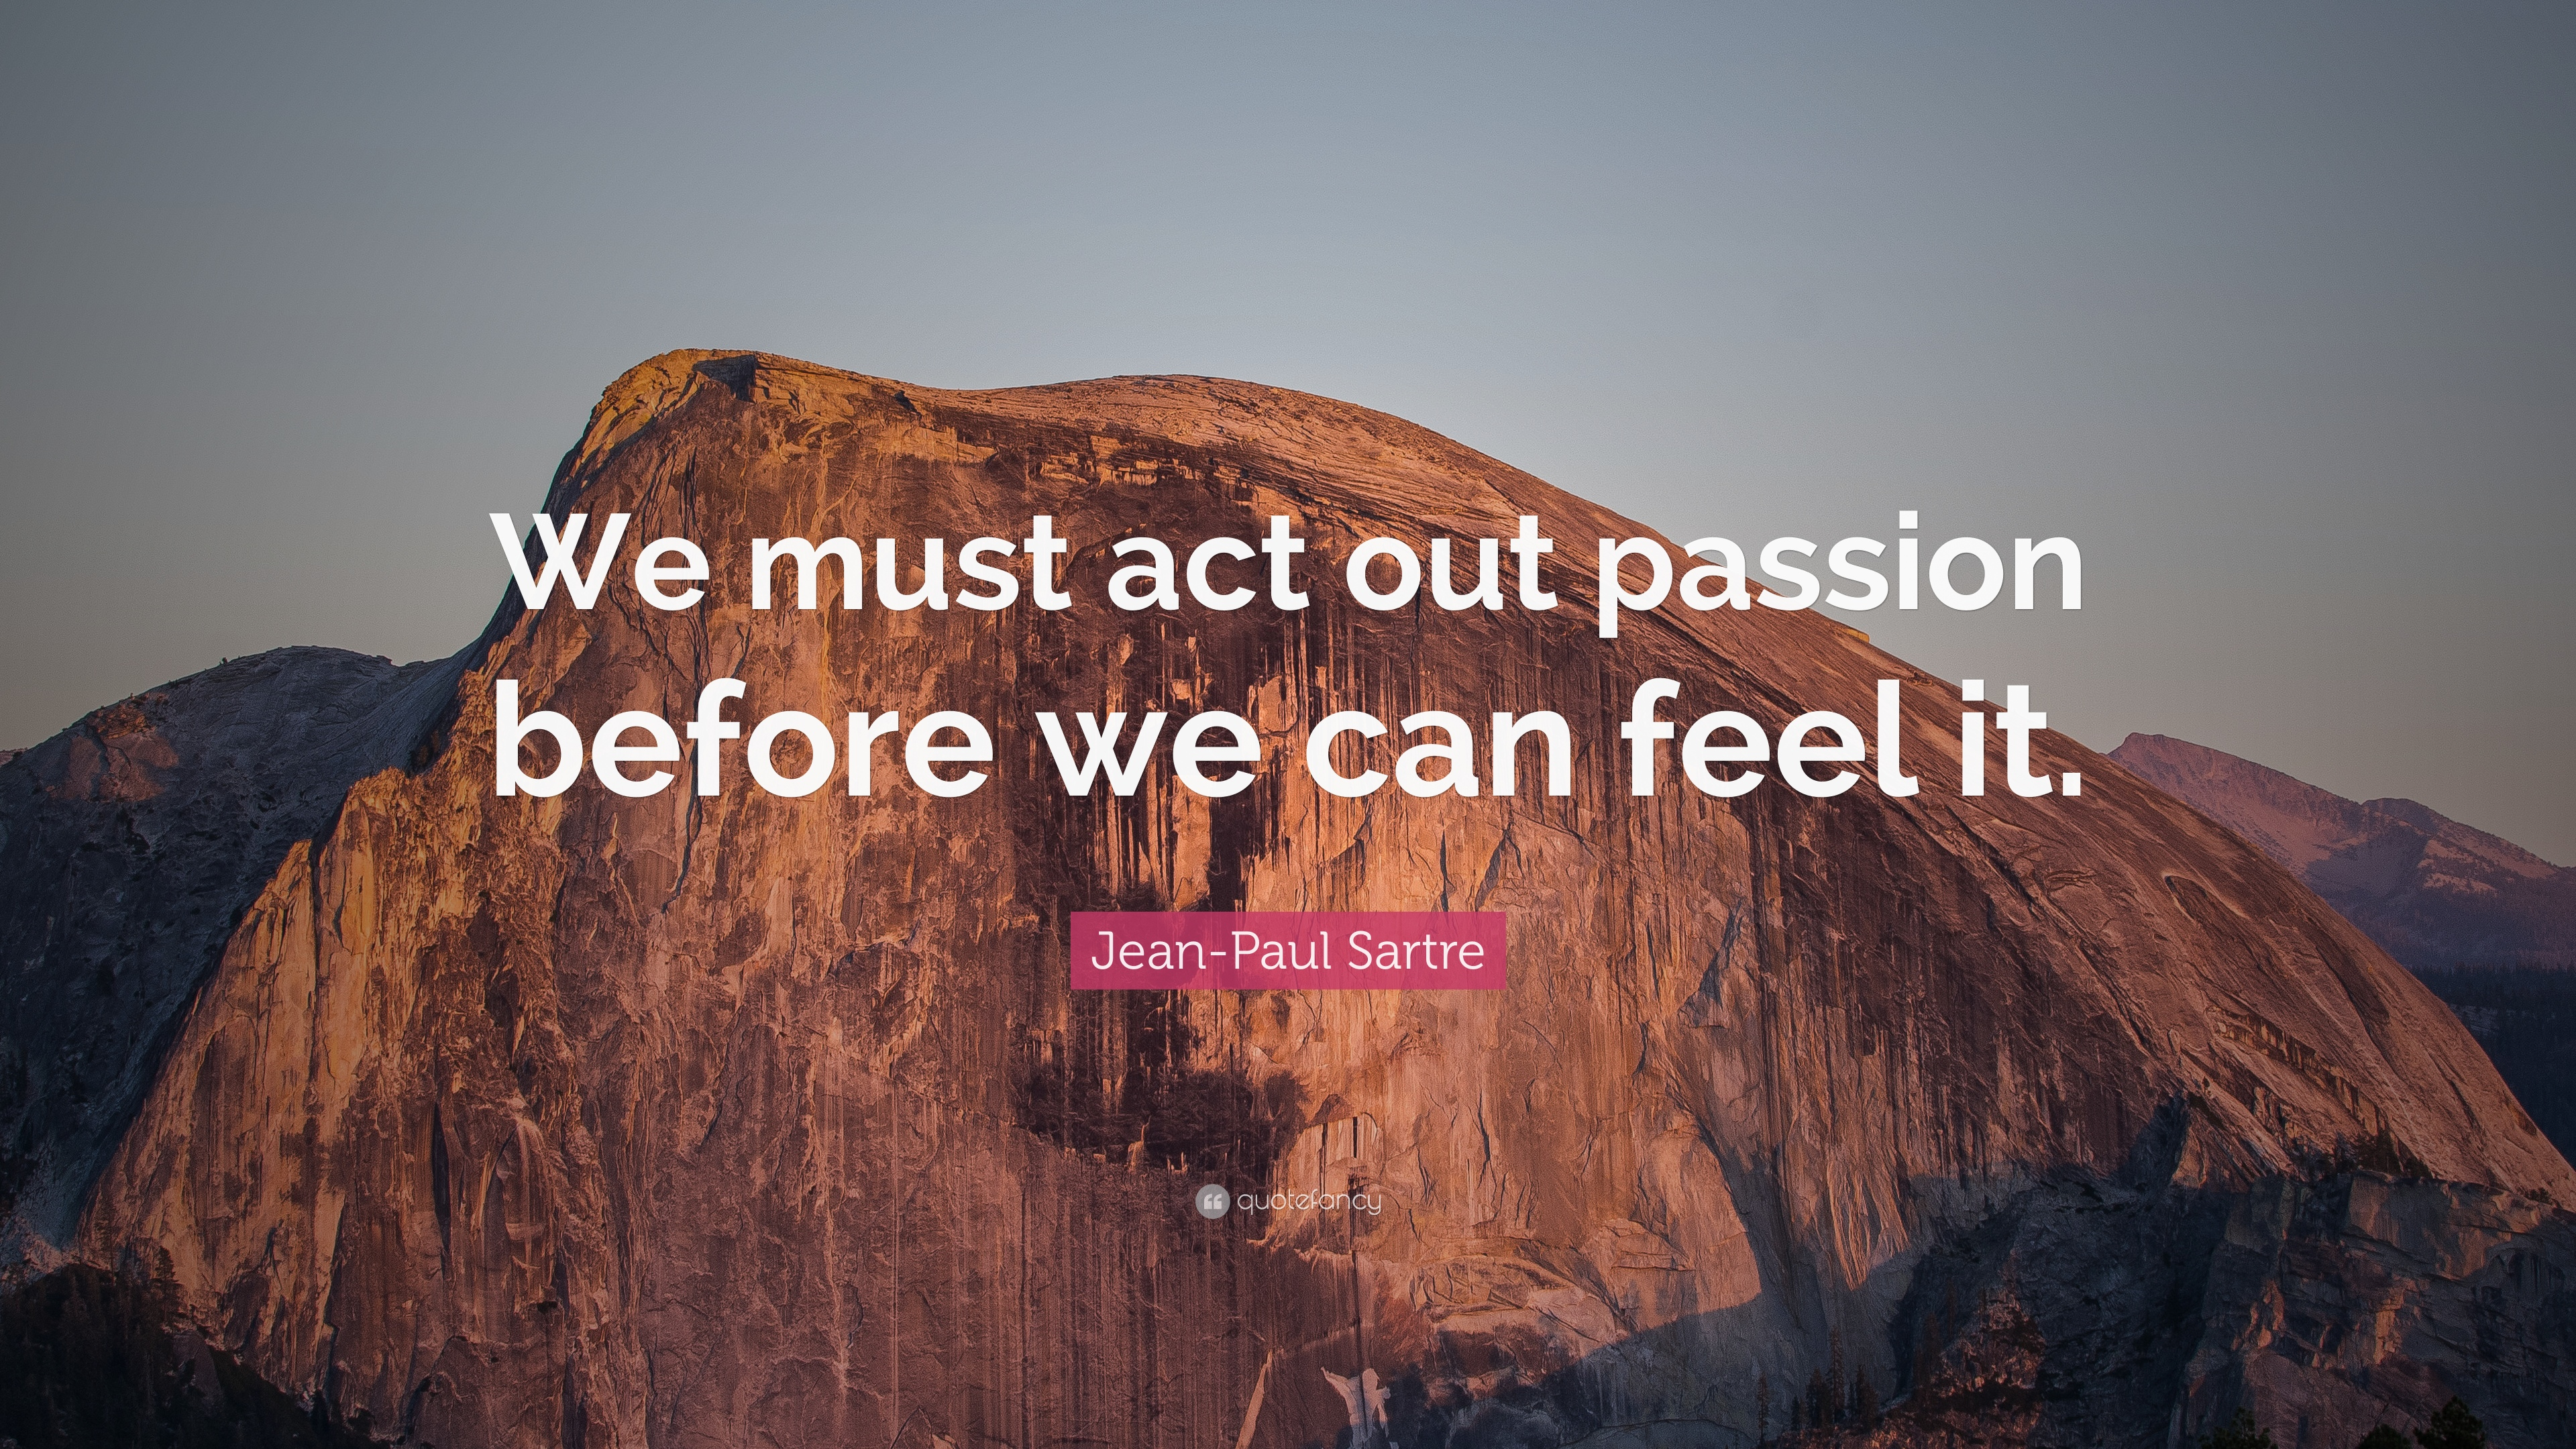 """Jean-Paul Sartre Quote: """"We must act out passion before we can feel it.""""  (11 wallpapers) - Quotefancy"""